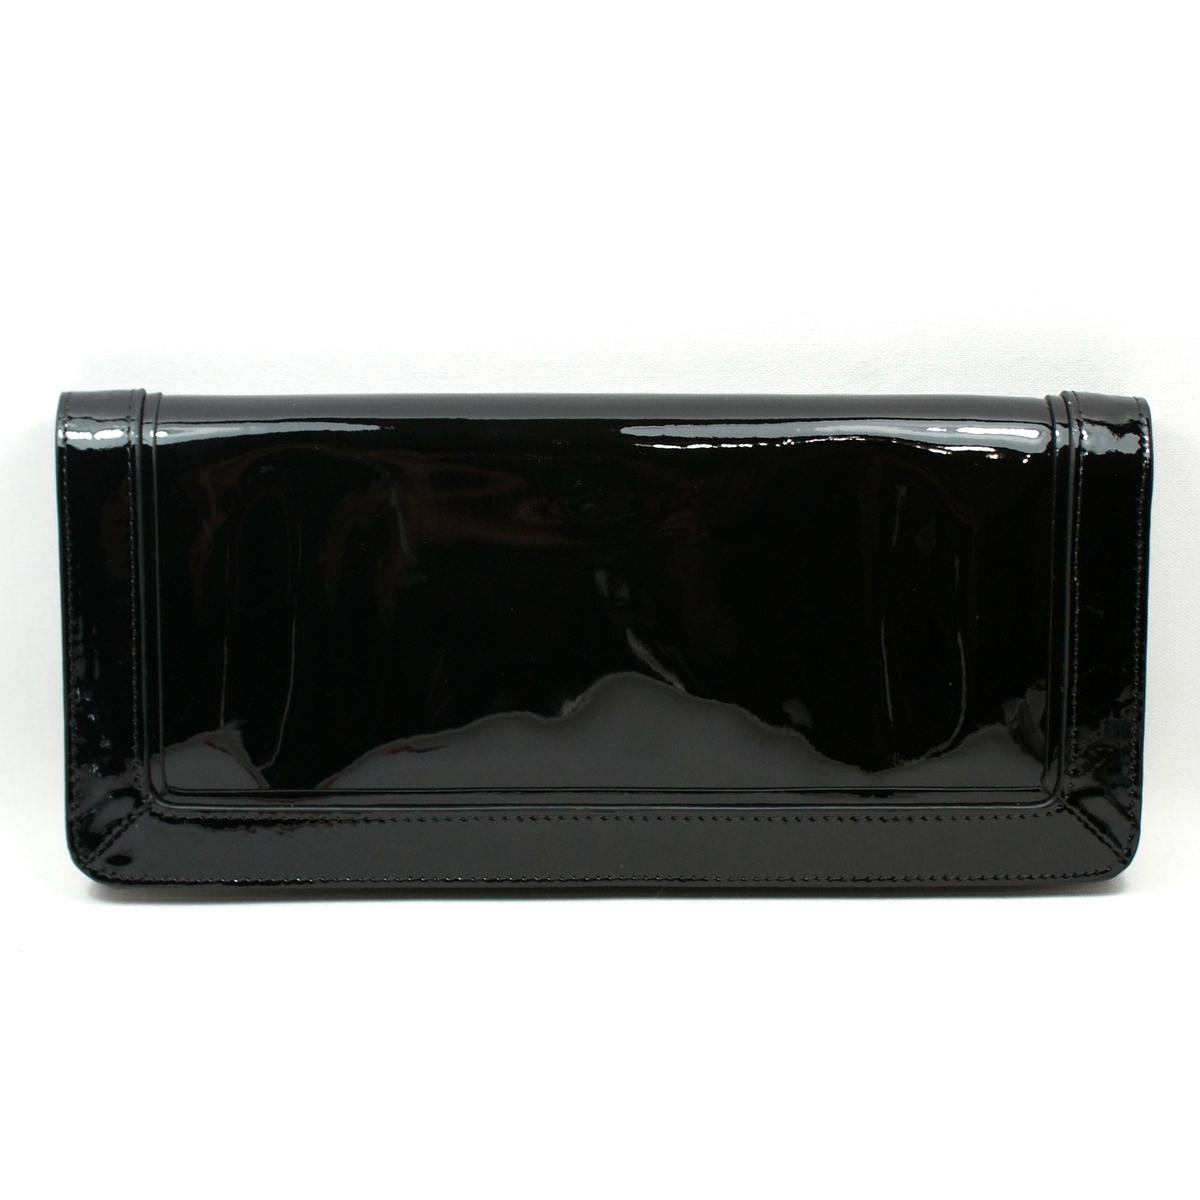 Tory Burch Tory Black Patent Leather Suki Wallet Clutch